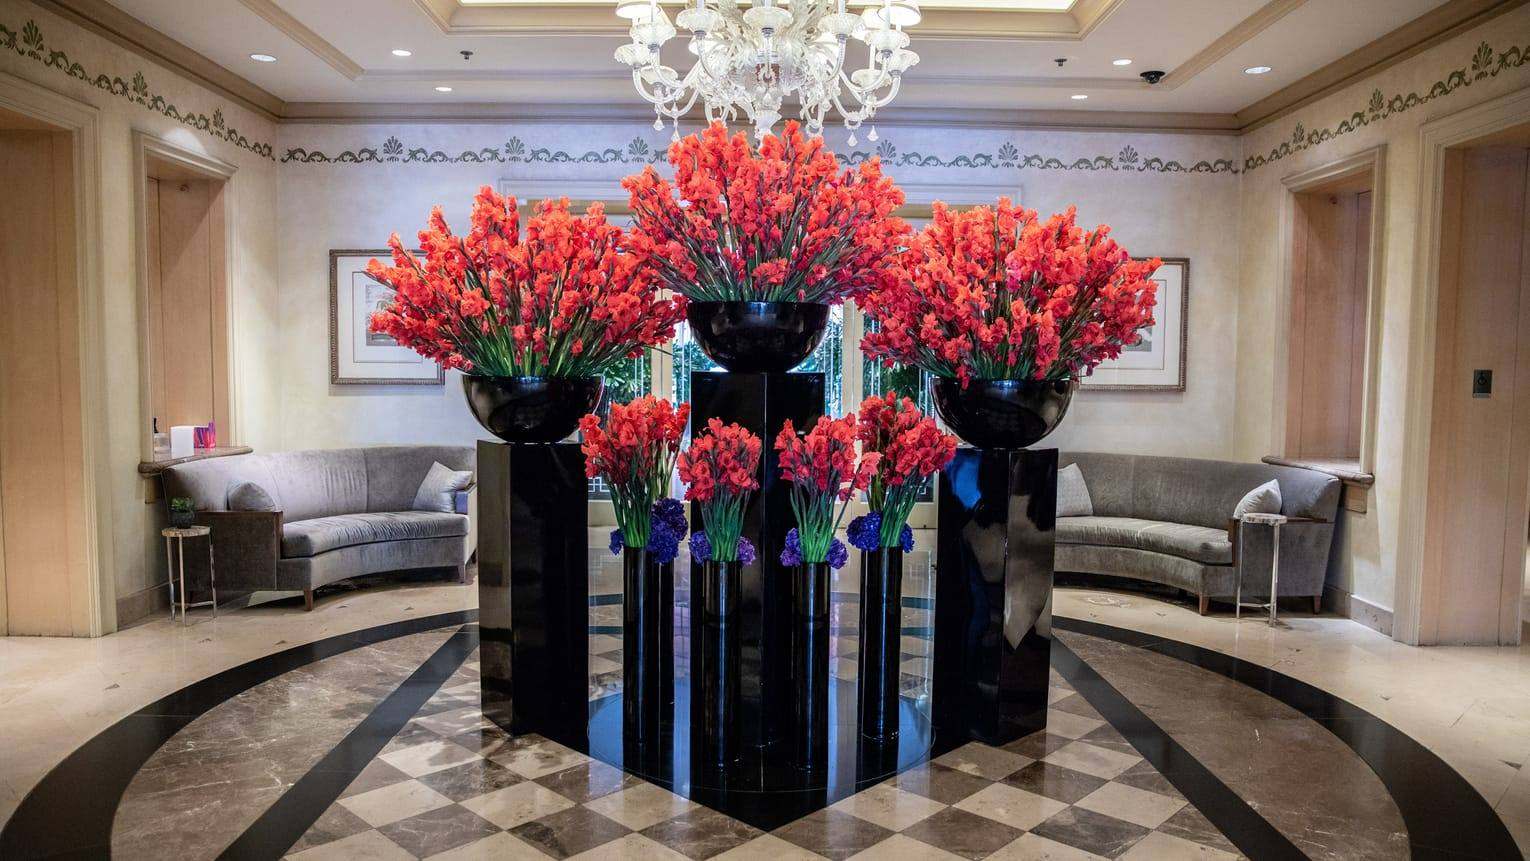 Floral installation by Jeff Leatham at the Four Seasons Los Angeles at Beverly Hills